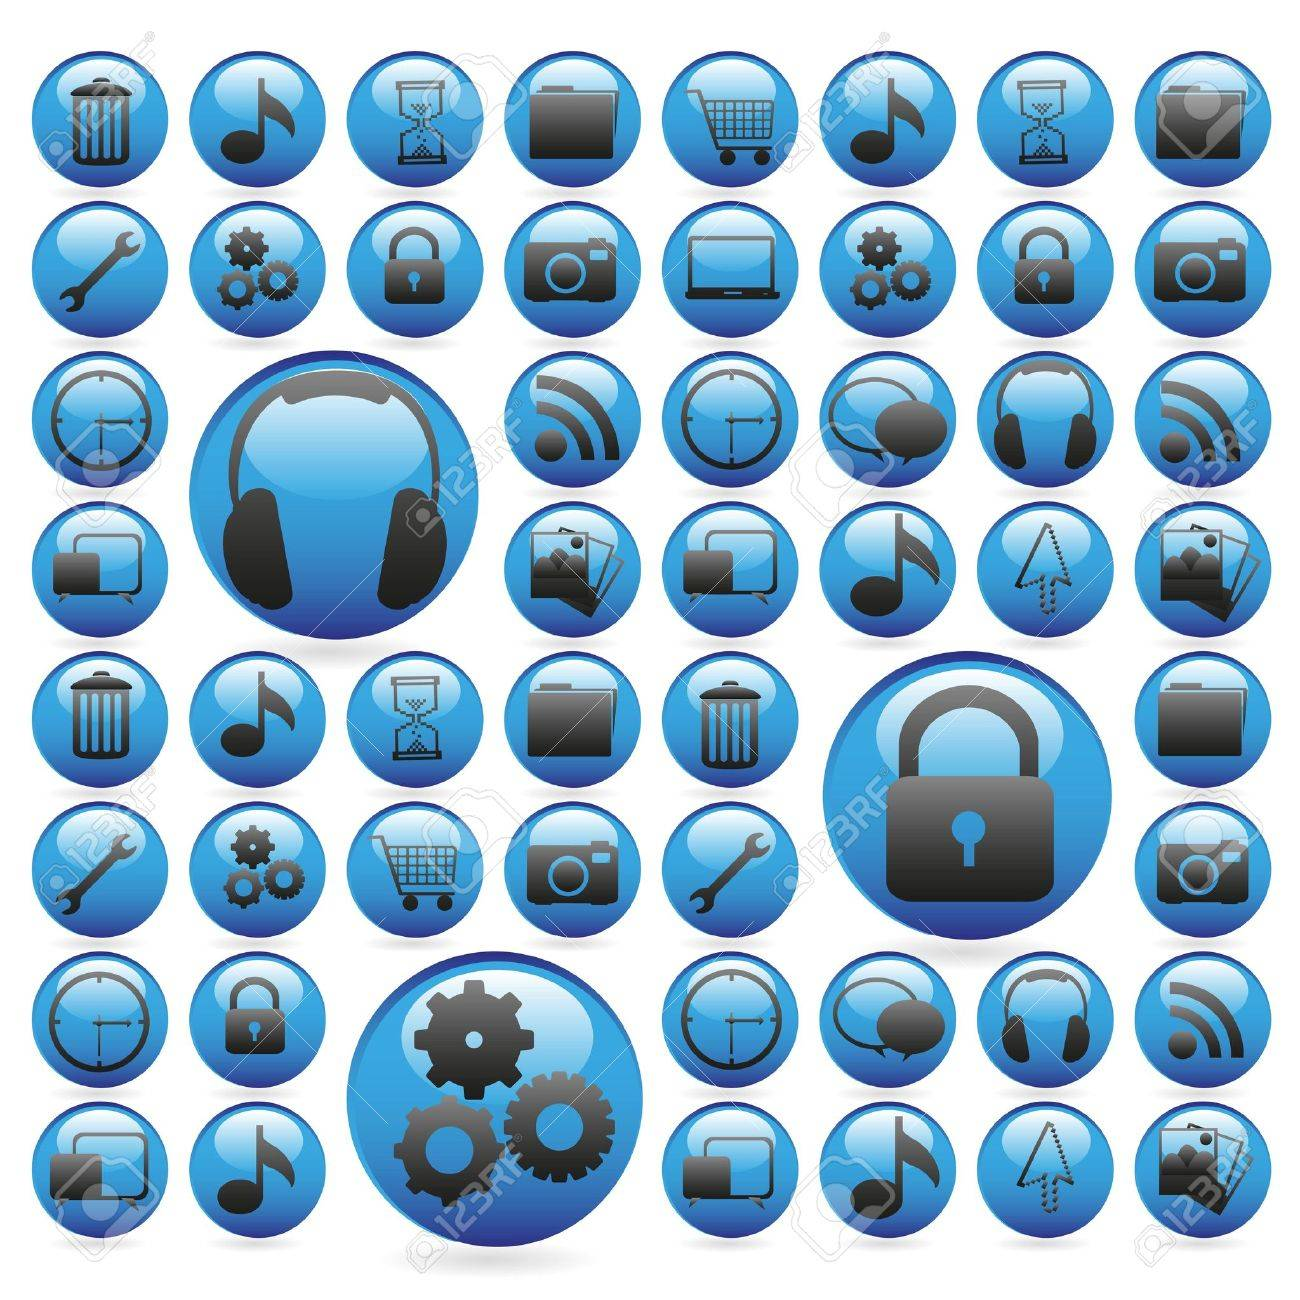 gel buttons in blue, outlined with white icons, vector illustration Stock Vector - 14044221